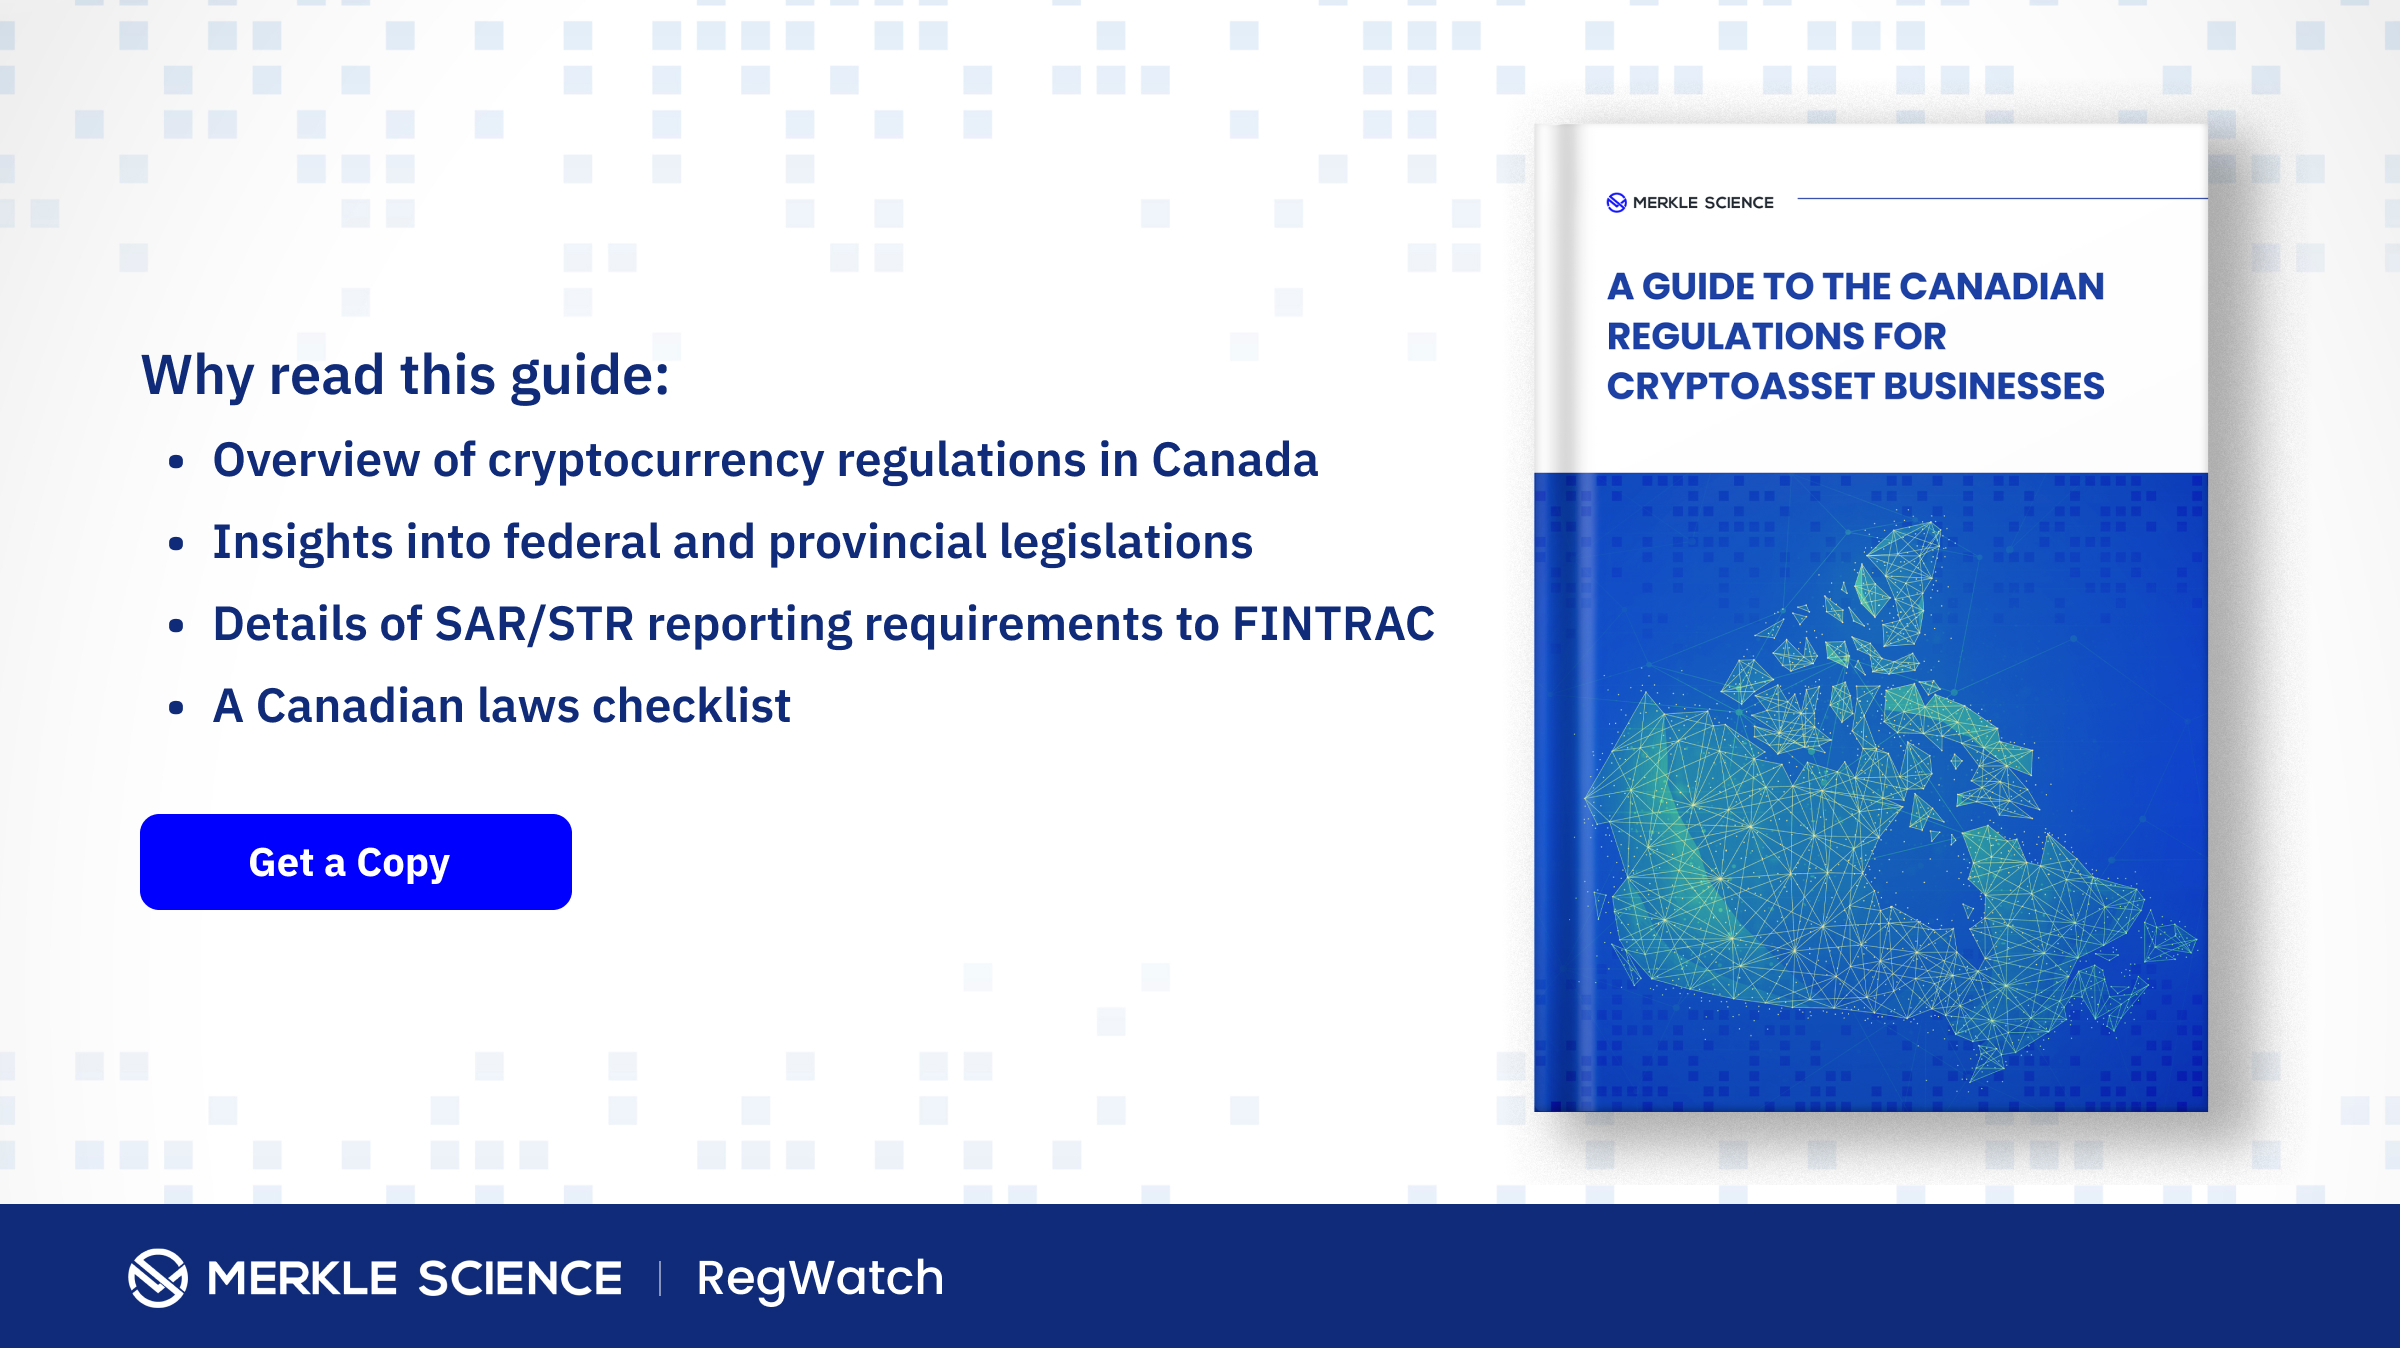 A Guide to the Canadian Regulations for Cryptoasset Businesses